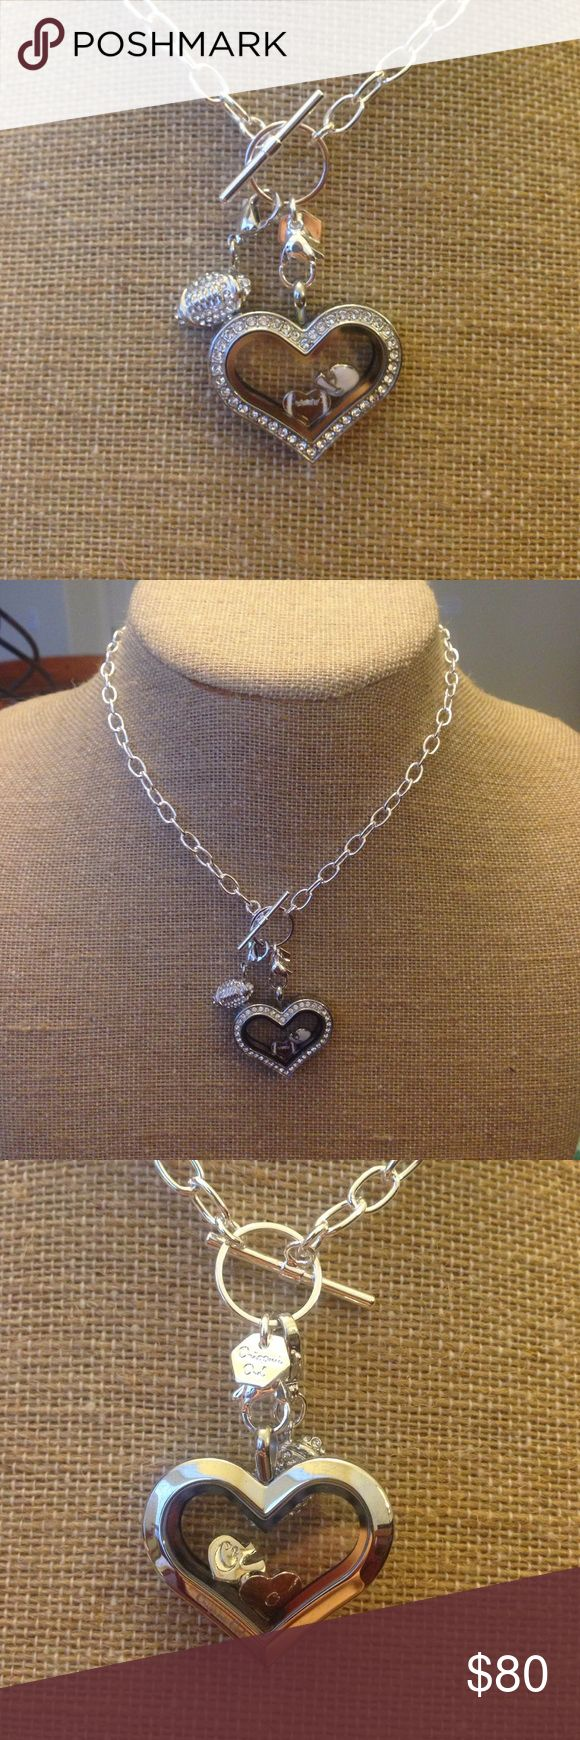 """Origami Owl Football Heart Locket NWT. 100% authentic. Includes crystal heart locket, 16"""" toggle chain, 2 charms (football heart, football helmet), and a crystal football dangle. I have 2 of these for sale!! Each one retails for $100 Origami Owl Jewelry Necklaces"""